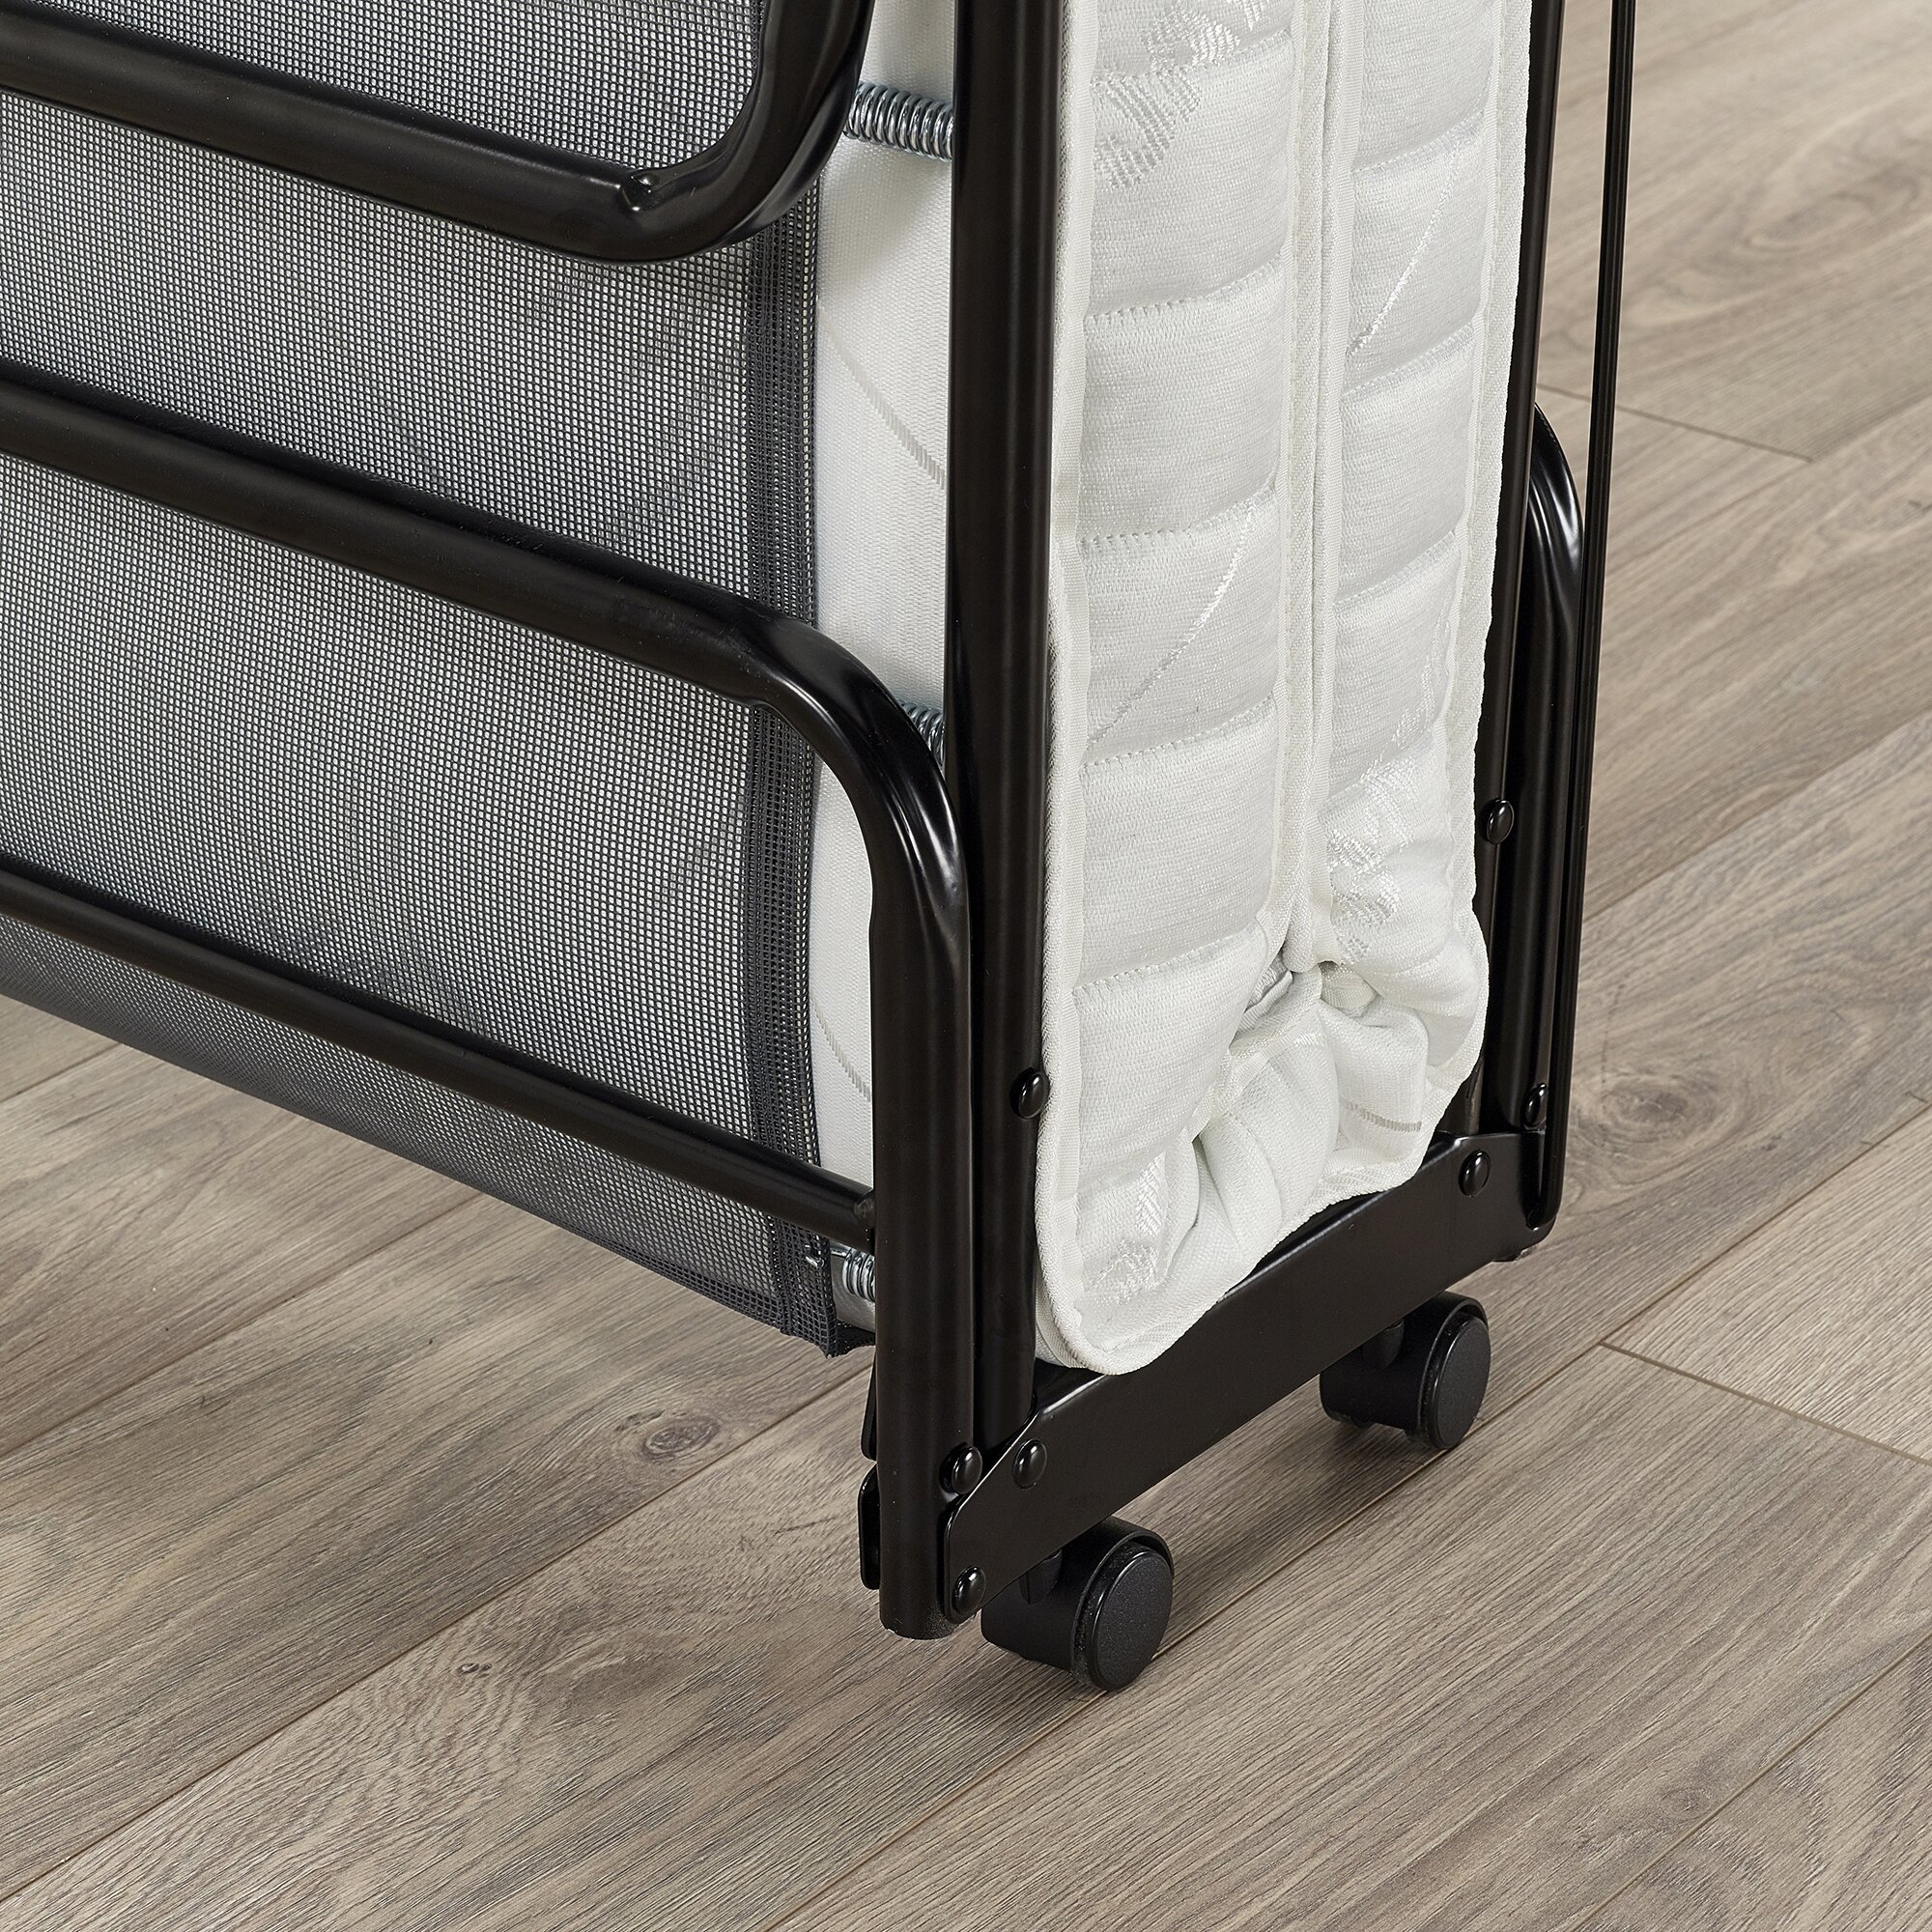 Folding Bed Automatic : Jay be supreme automatic folding bed with pocket sprung